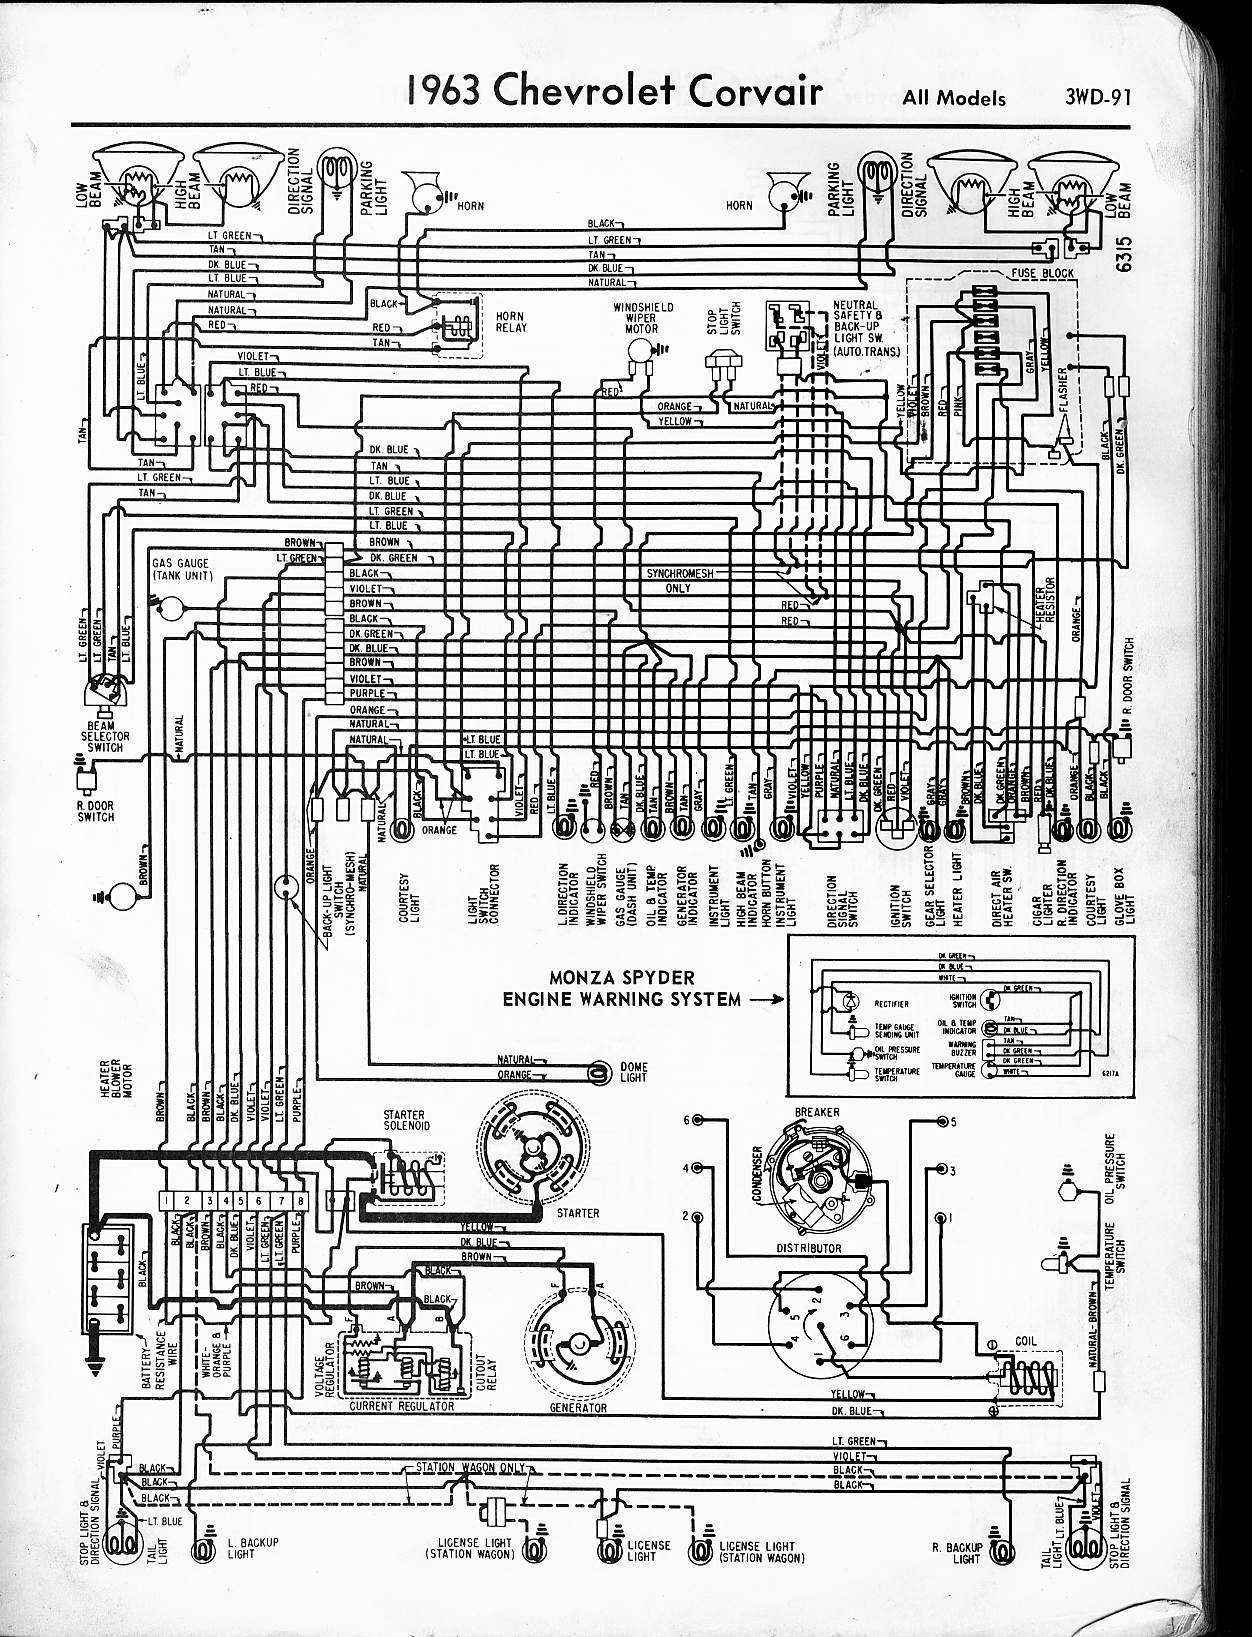 1963 Corvette Wiring Schematic Schematics Diagrams 250 Diagram Printable On 91 Ford F 450 57 65 Chevy Rh Oldcarmanualproject Com 1956 Truck 1969